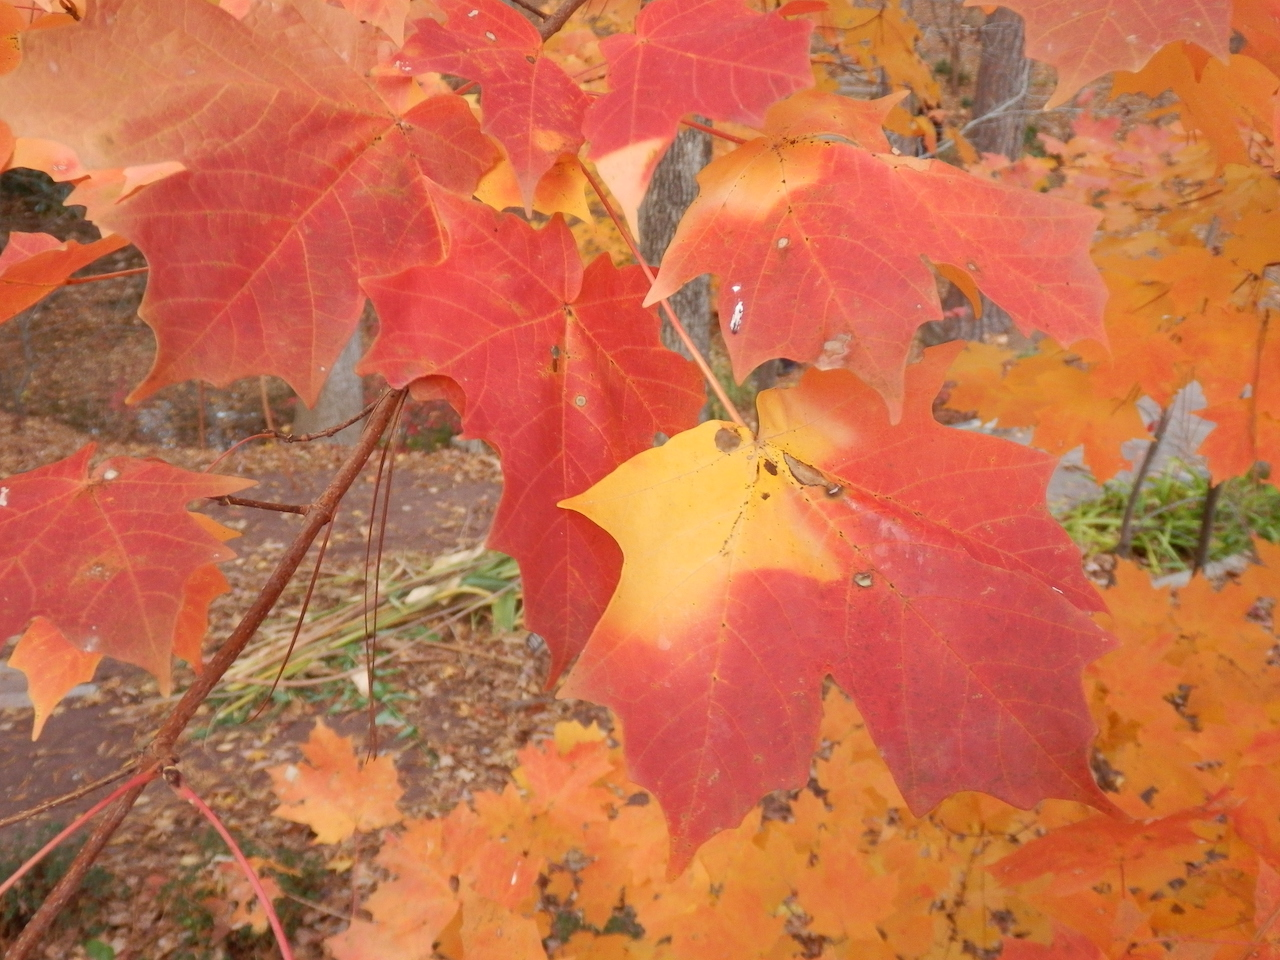 The Scientific Name is Acer floridanum [= Acer barbatum, Acer saccharum ssp. floridanum]. You will likely hear them called Southern Sugar Maple, Florida Maple. This picture shows the Beautiful fall color of Acer floridanum [= Acer barbatum, Acer saccharum ssp. floridanum]